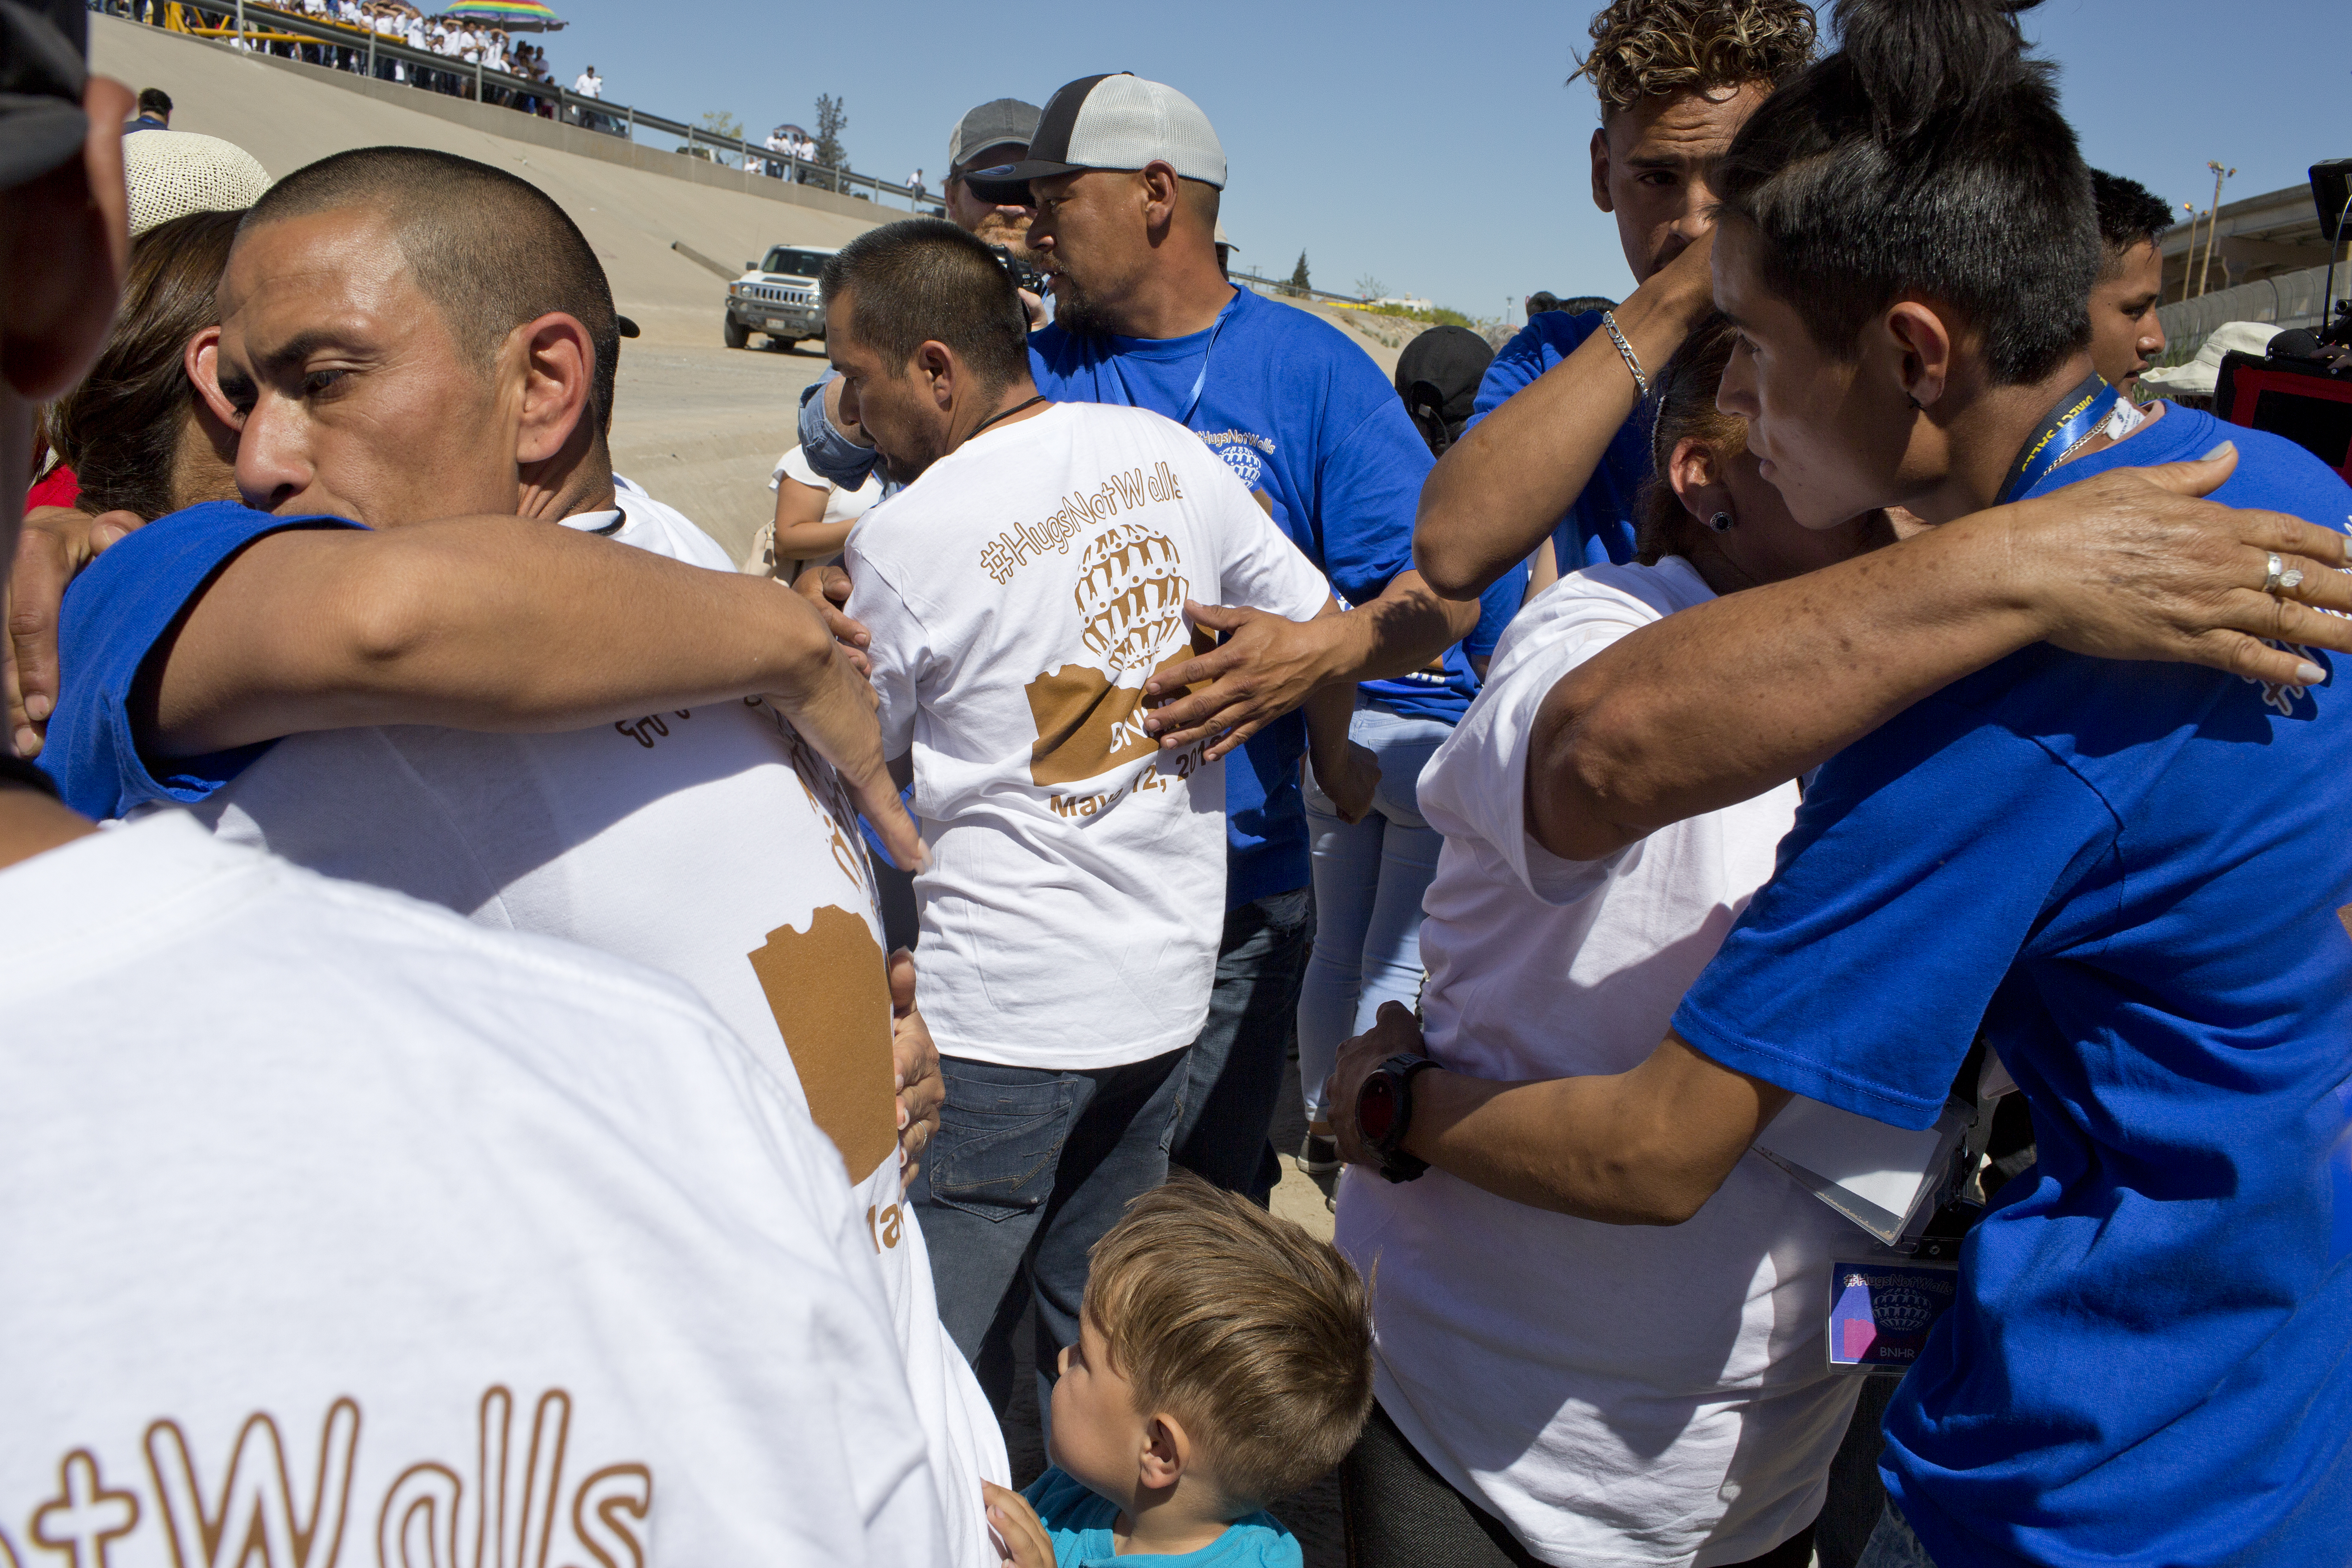 Reunion Of Families Separated By The U.S.-Mexico Border